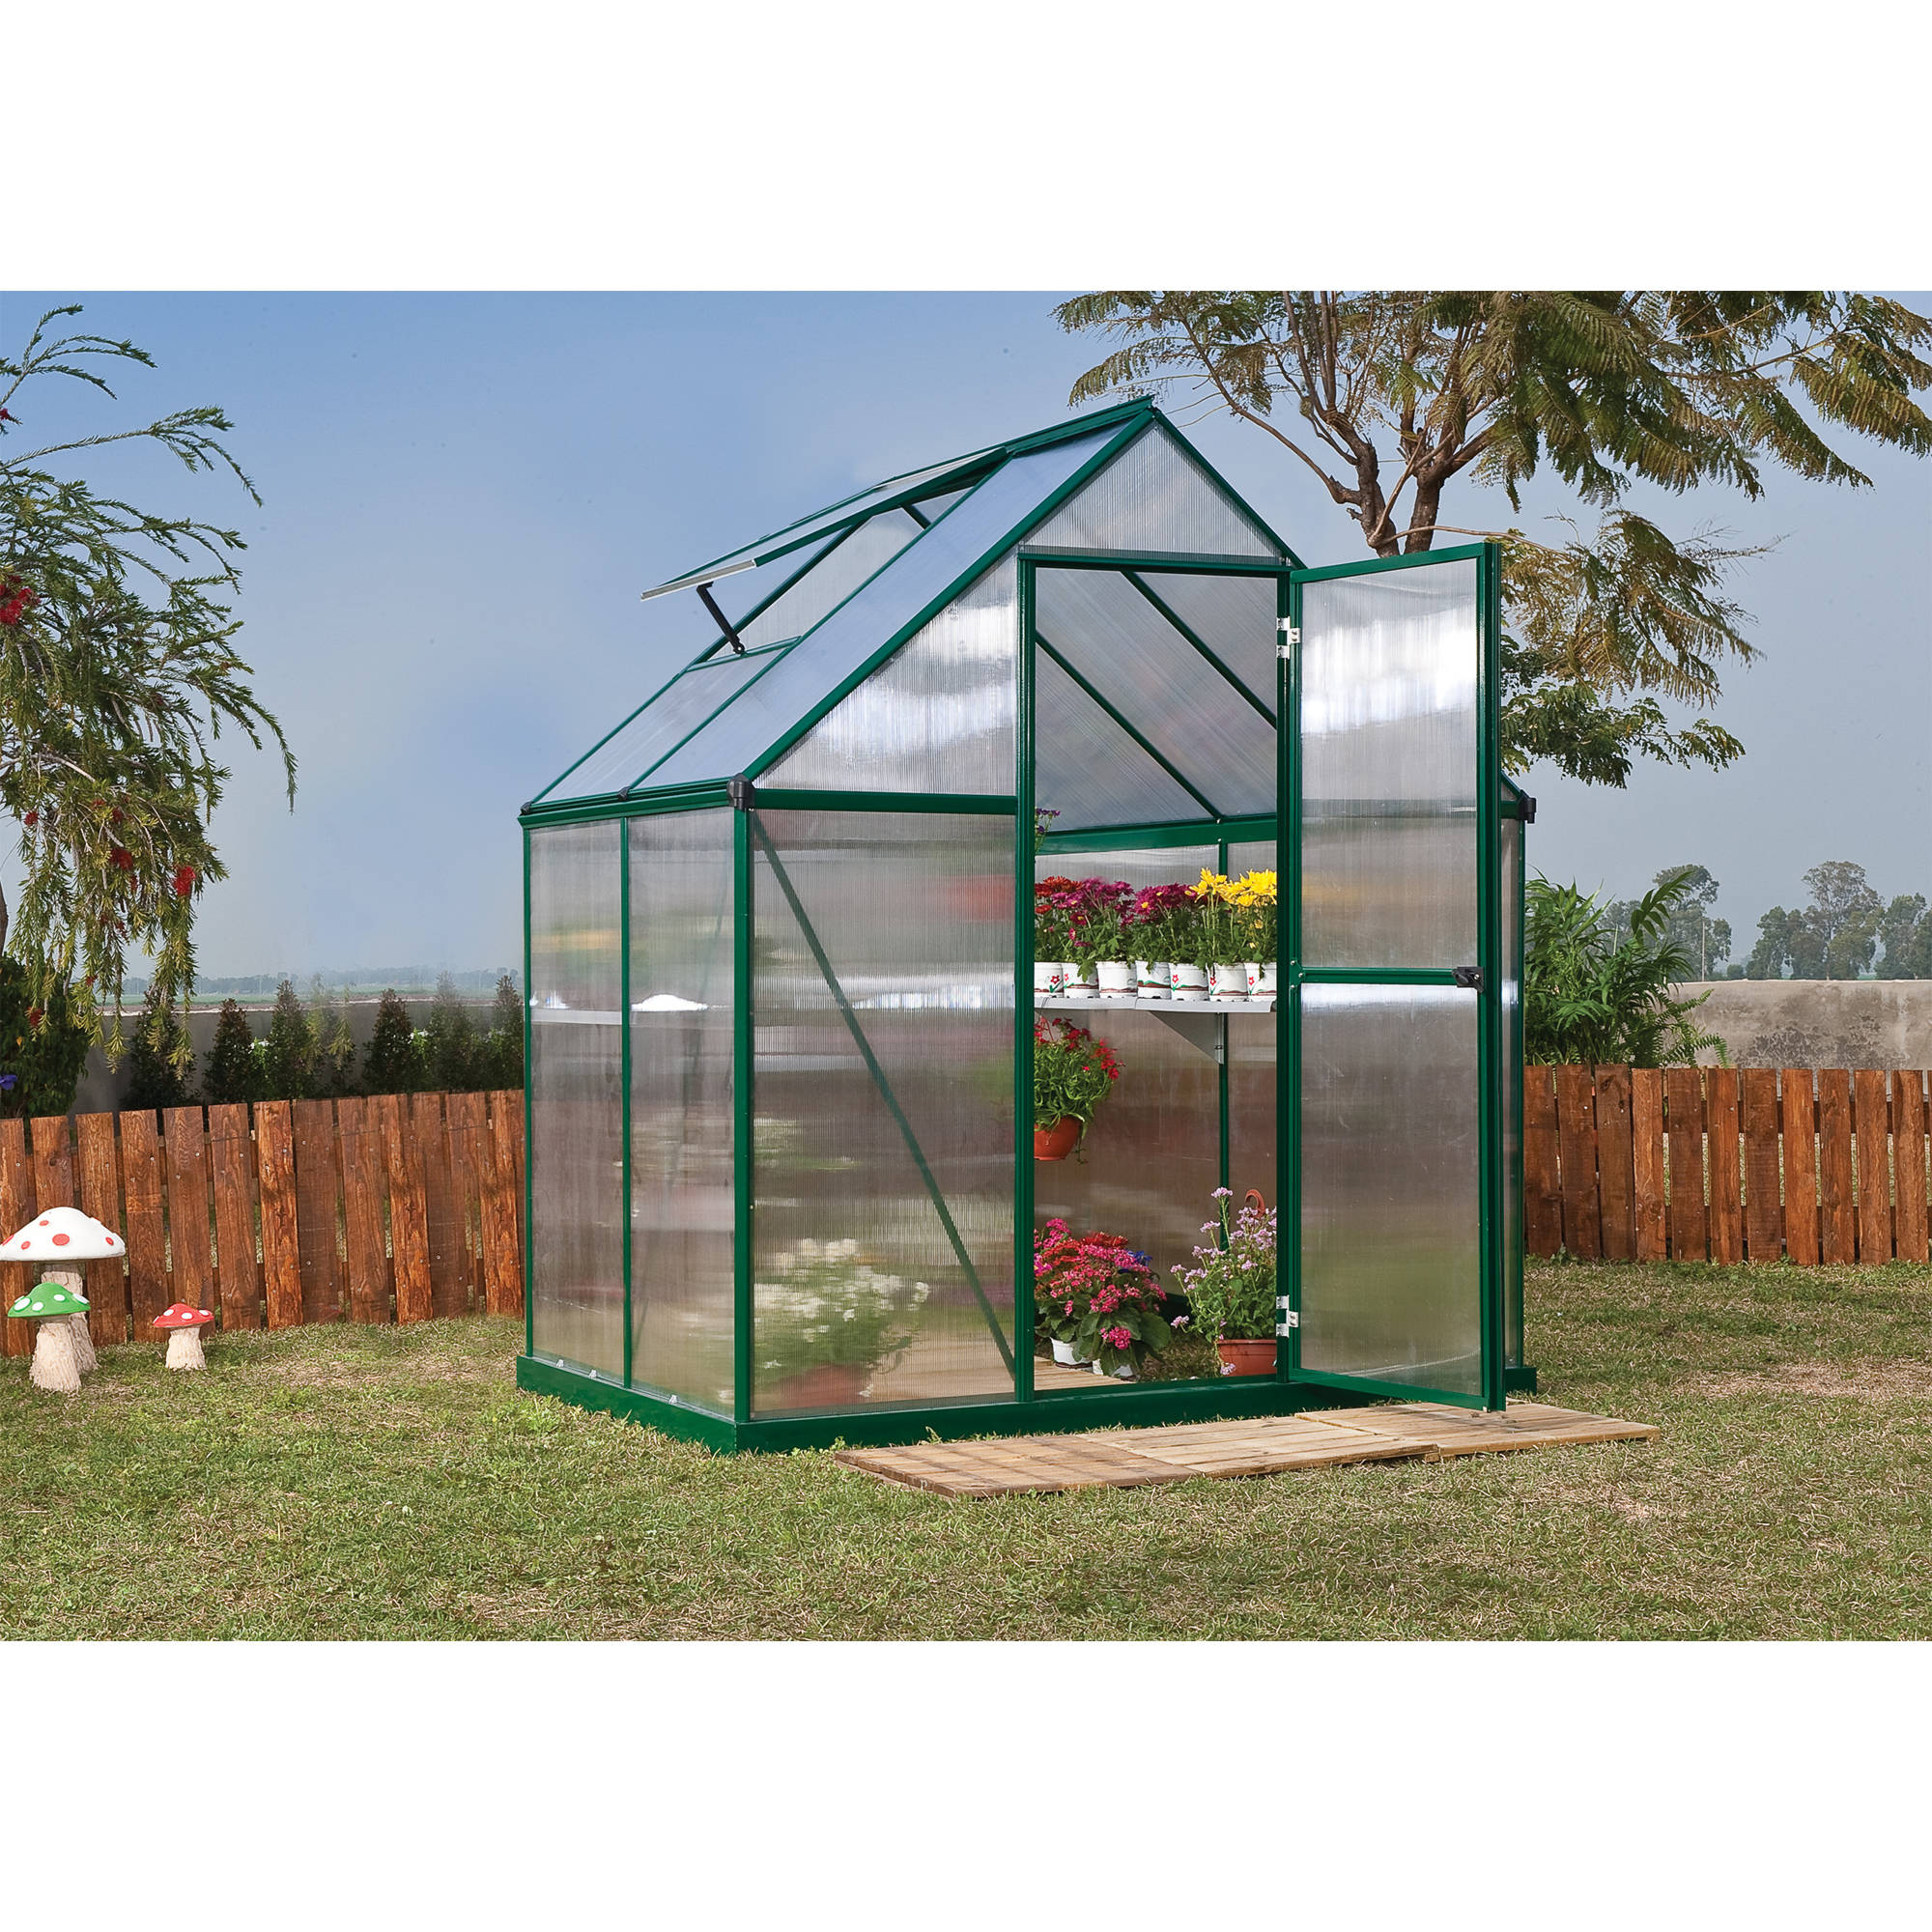 Palram Mythos Greenhouse 6' x 4' Green by Palram